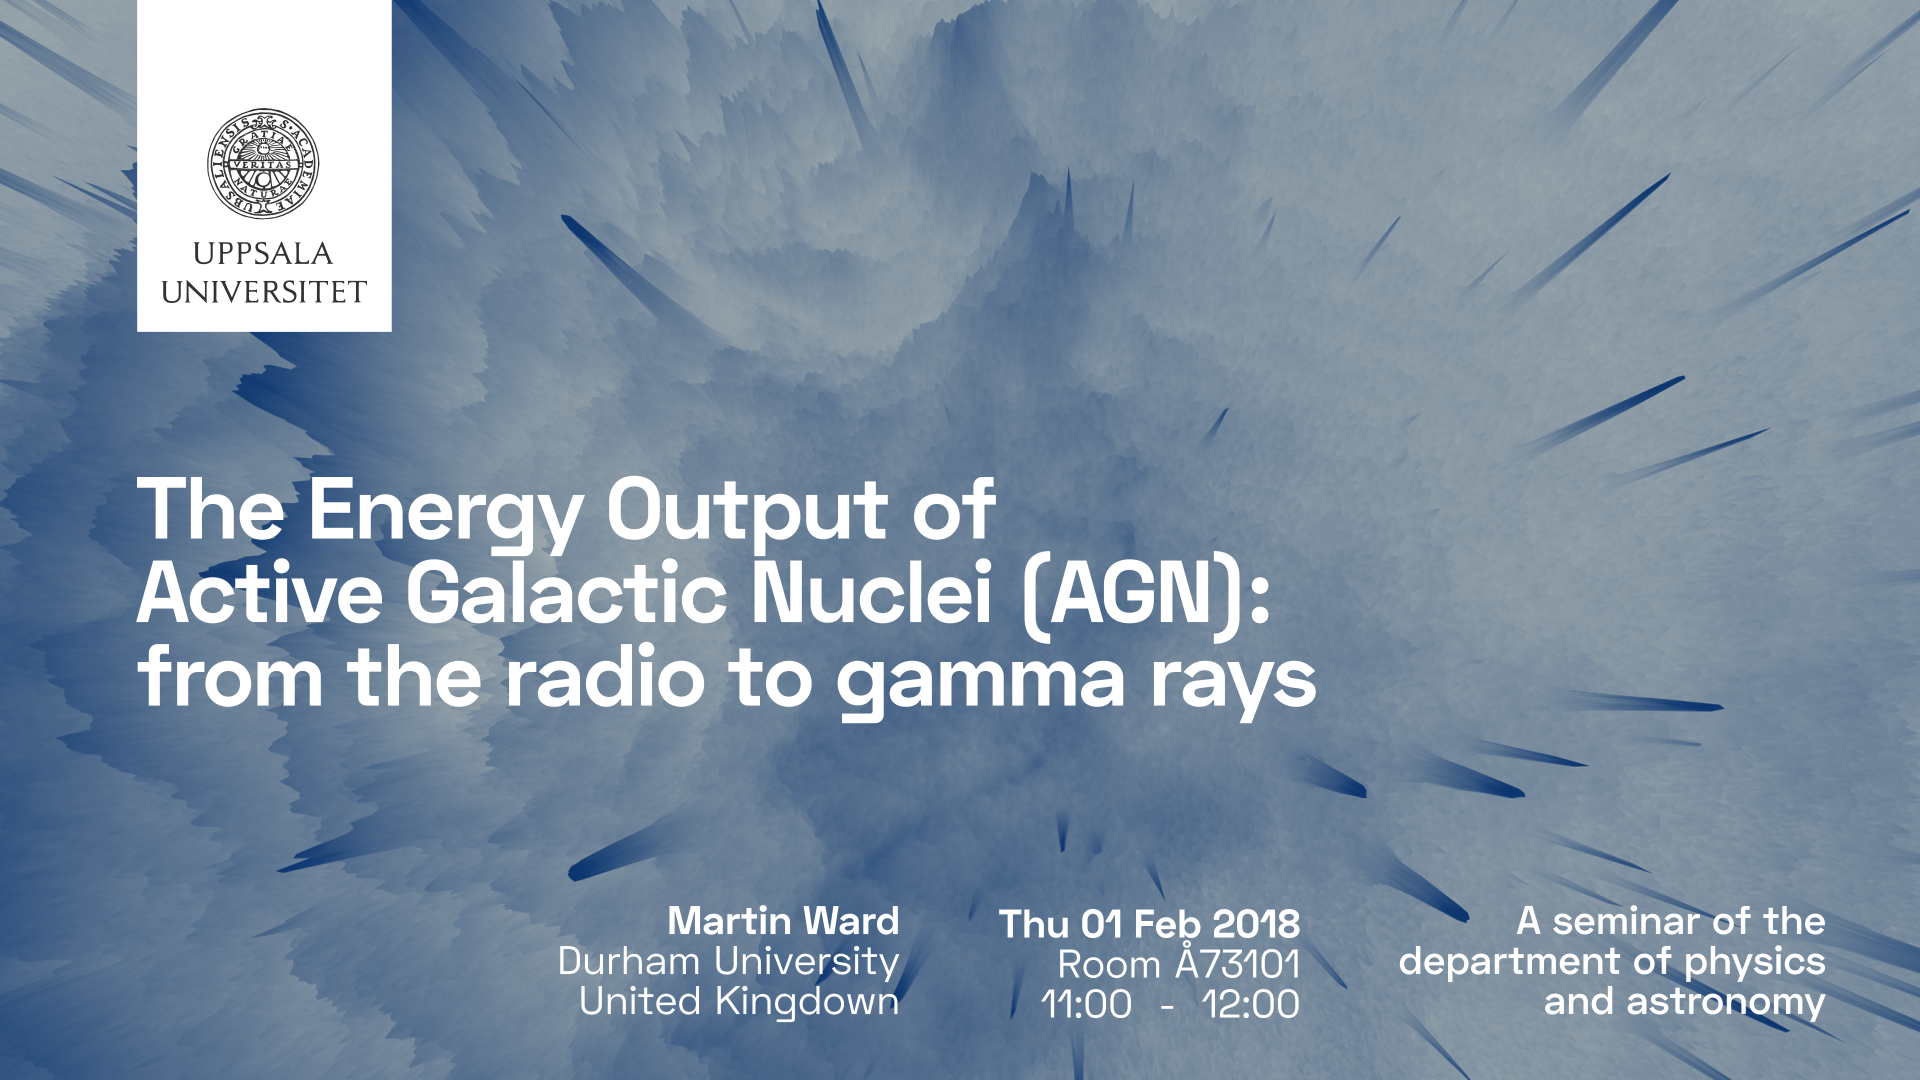 Seminar: The Energy Output of Active Galactic Nuclei (AGN): from the radio to gamma rays